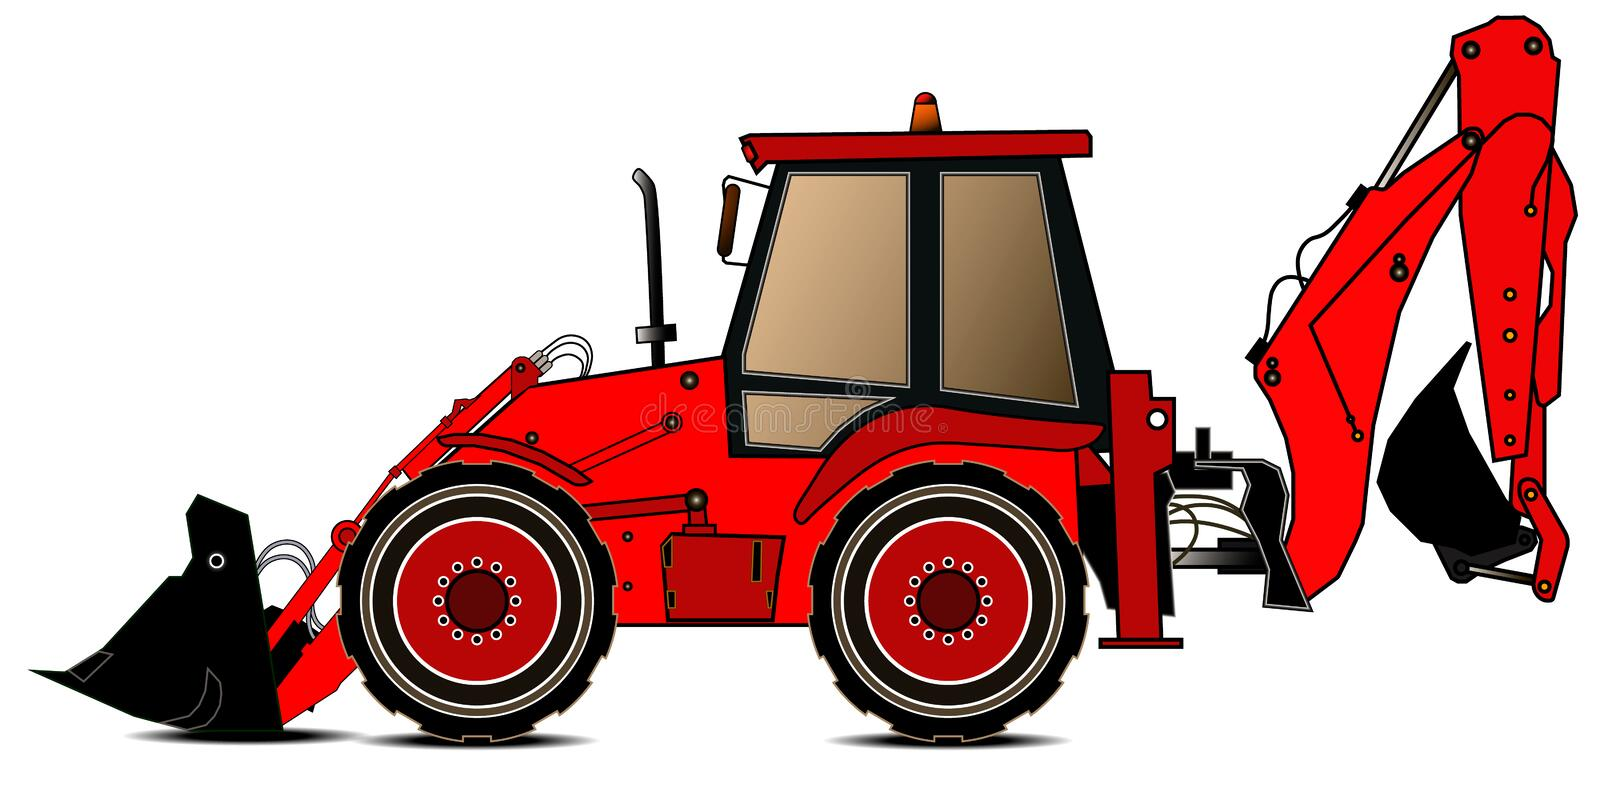 Red backhoe loader on a white background. Construction machinery. Special equipment. Vector illustration.  vector illustration